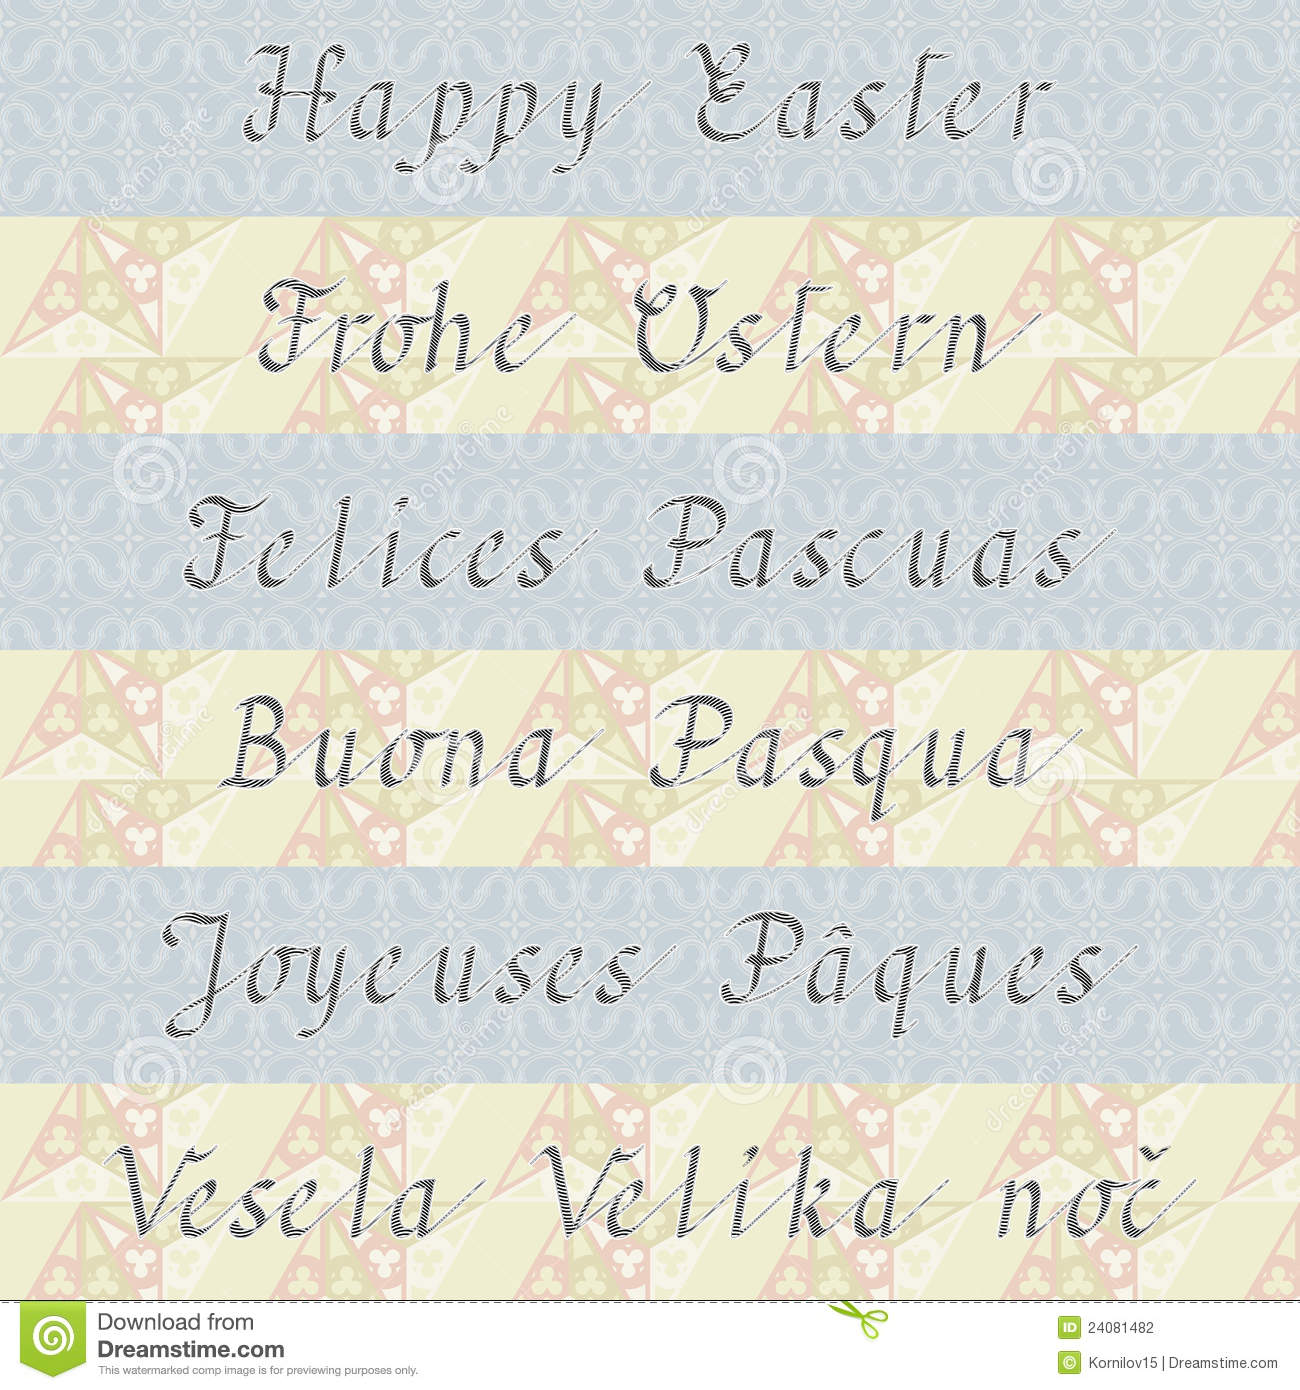 how to say happy easter in spanish